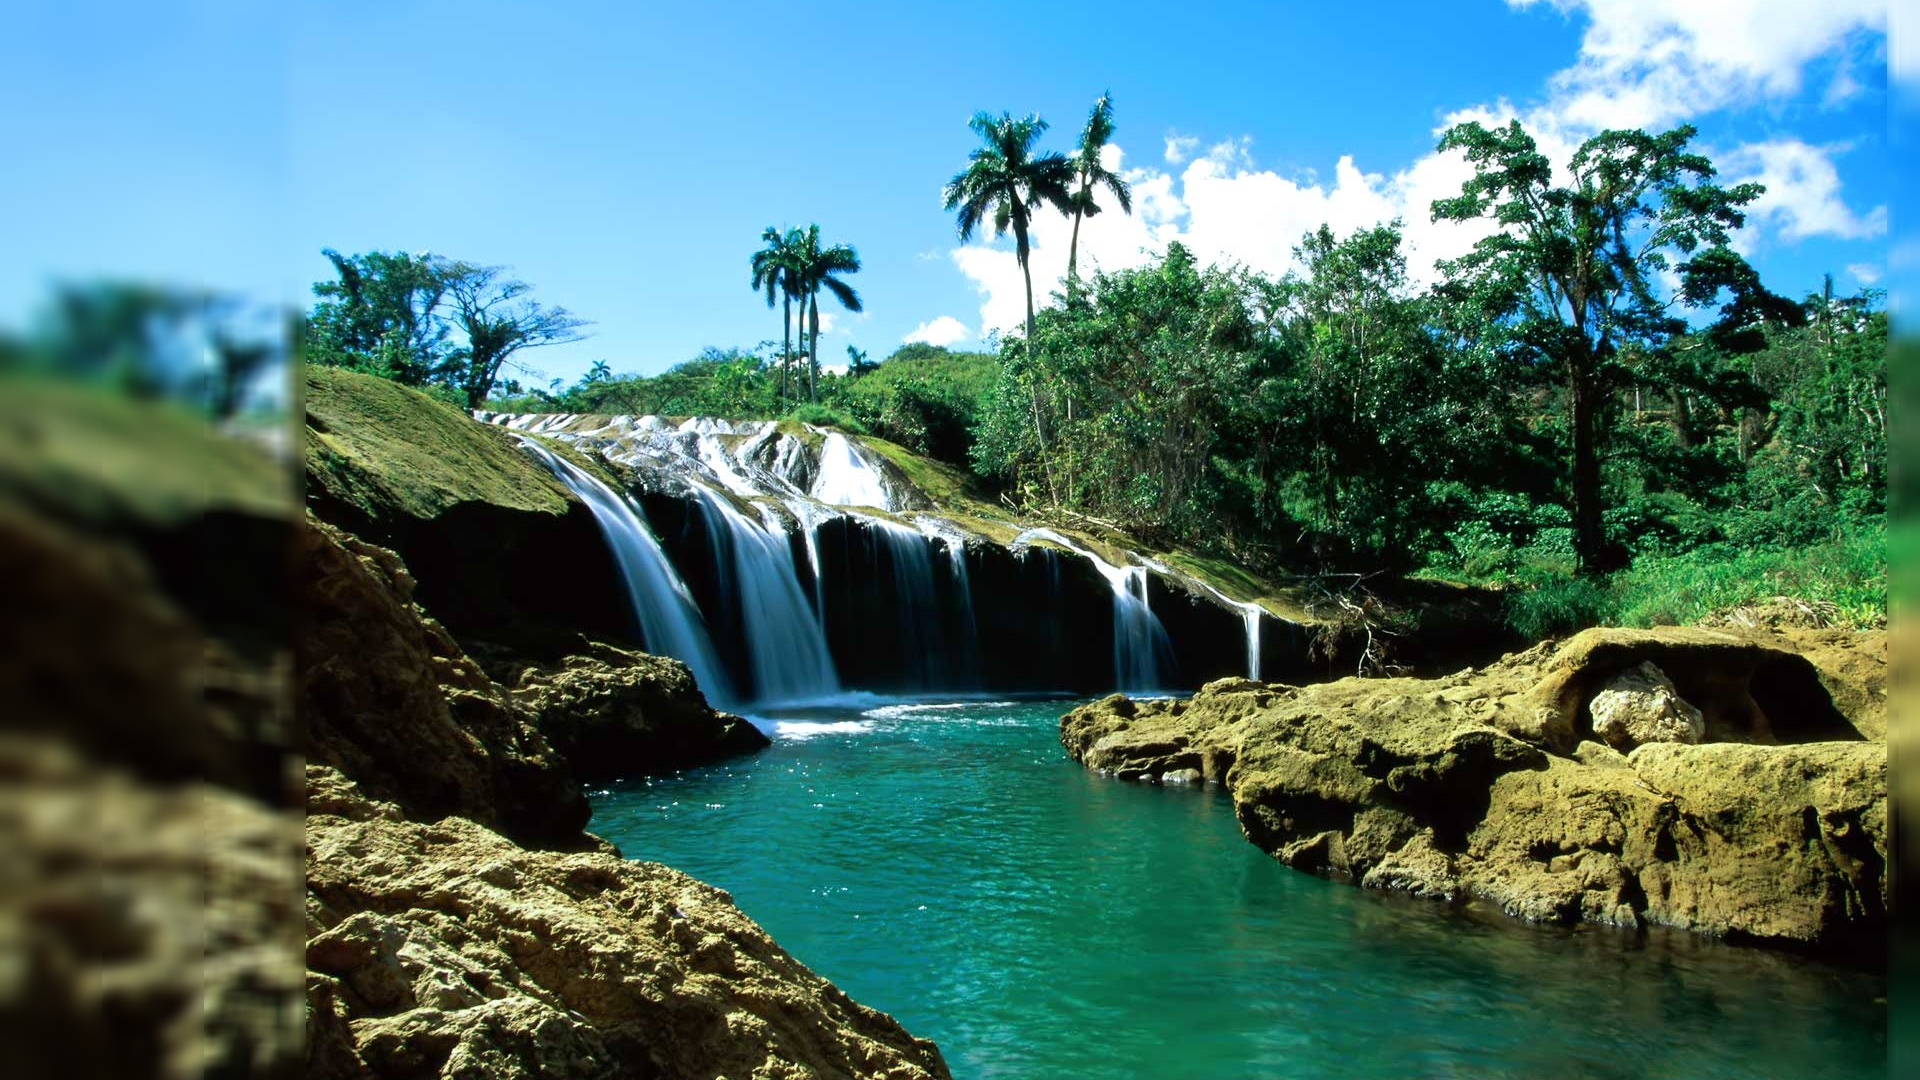 Desktop Backgrounds Clear Waterfalls #4237203, 1920x1080 | All For